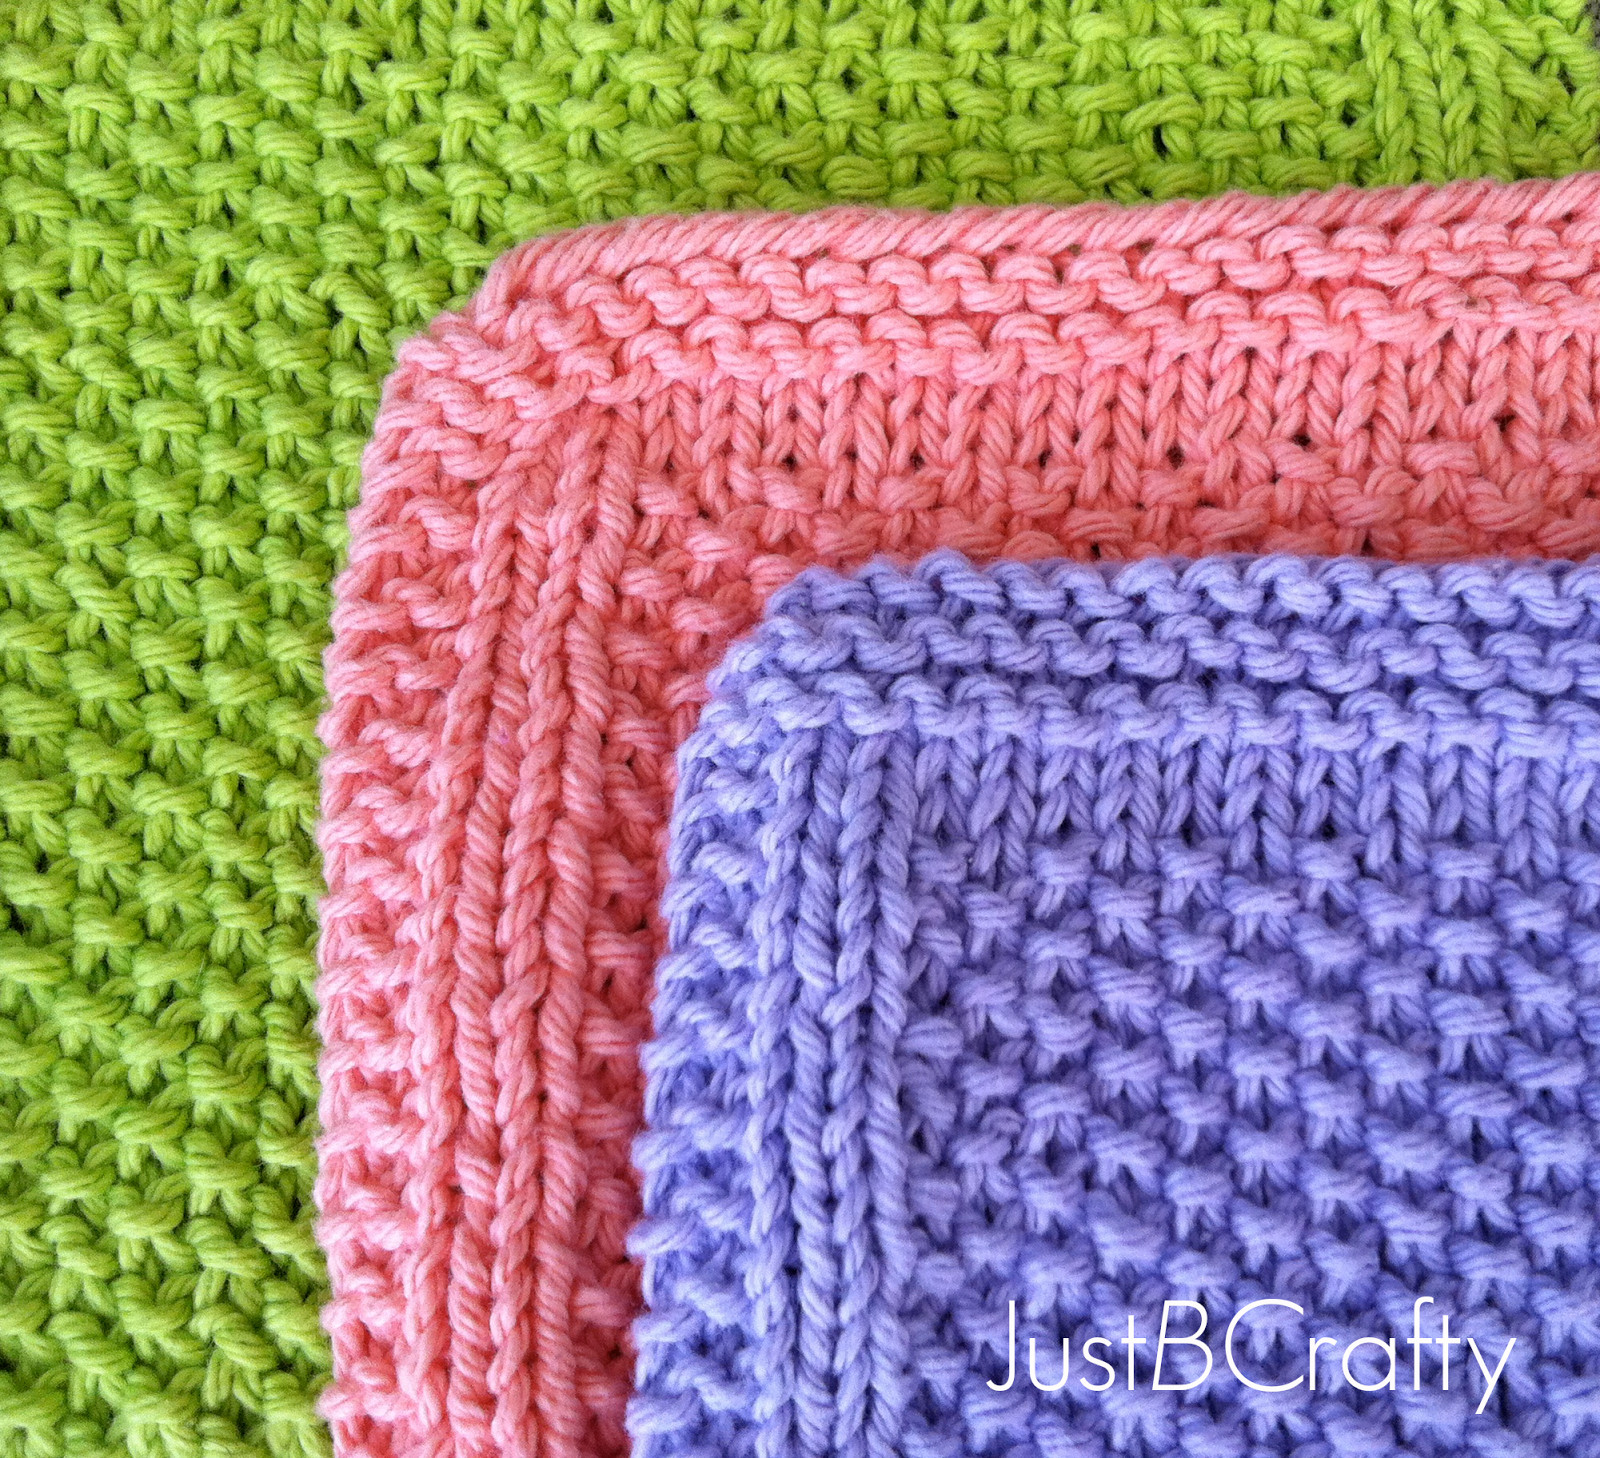 Beautiful Seed Stitch Dishcloths Just Be Crafty Dishcloth Patterns Of Charming 41 Images Dishcloth Patterns